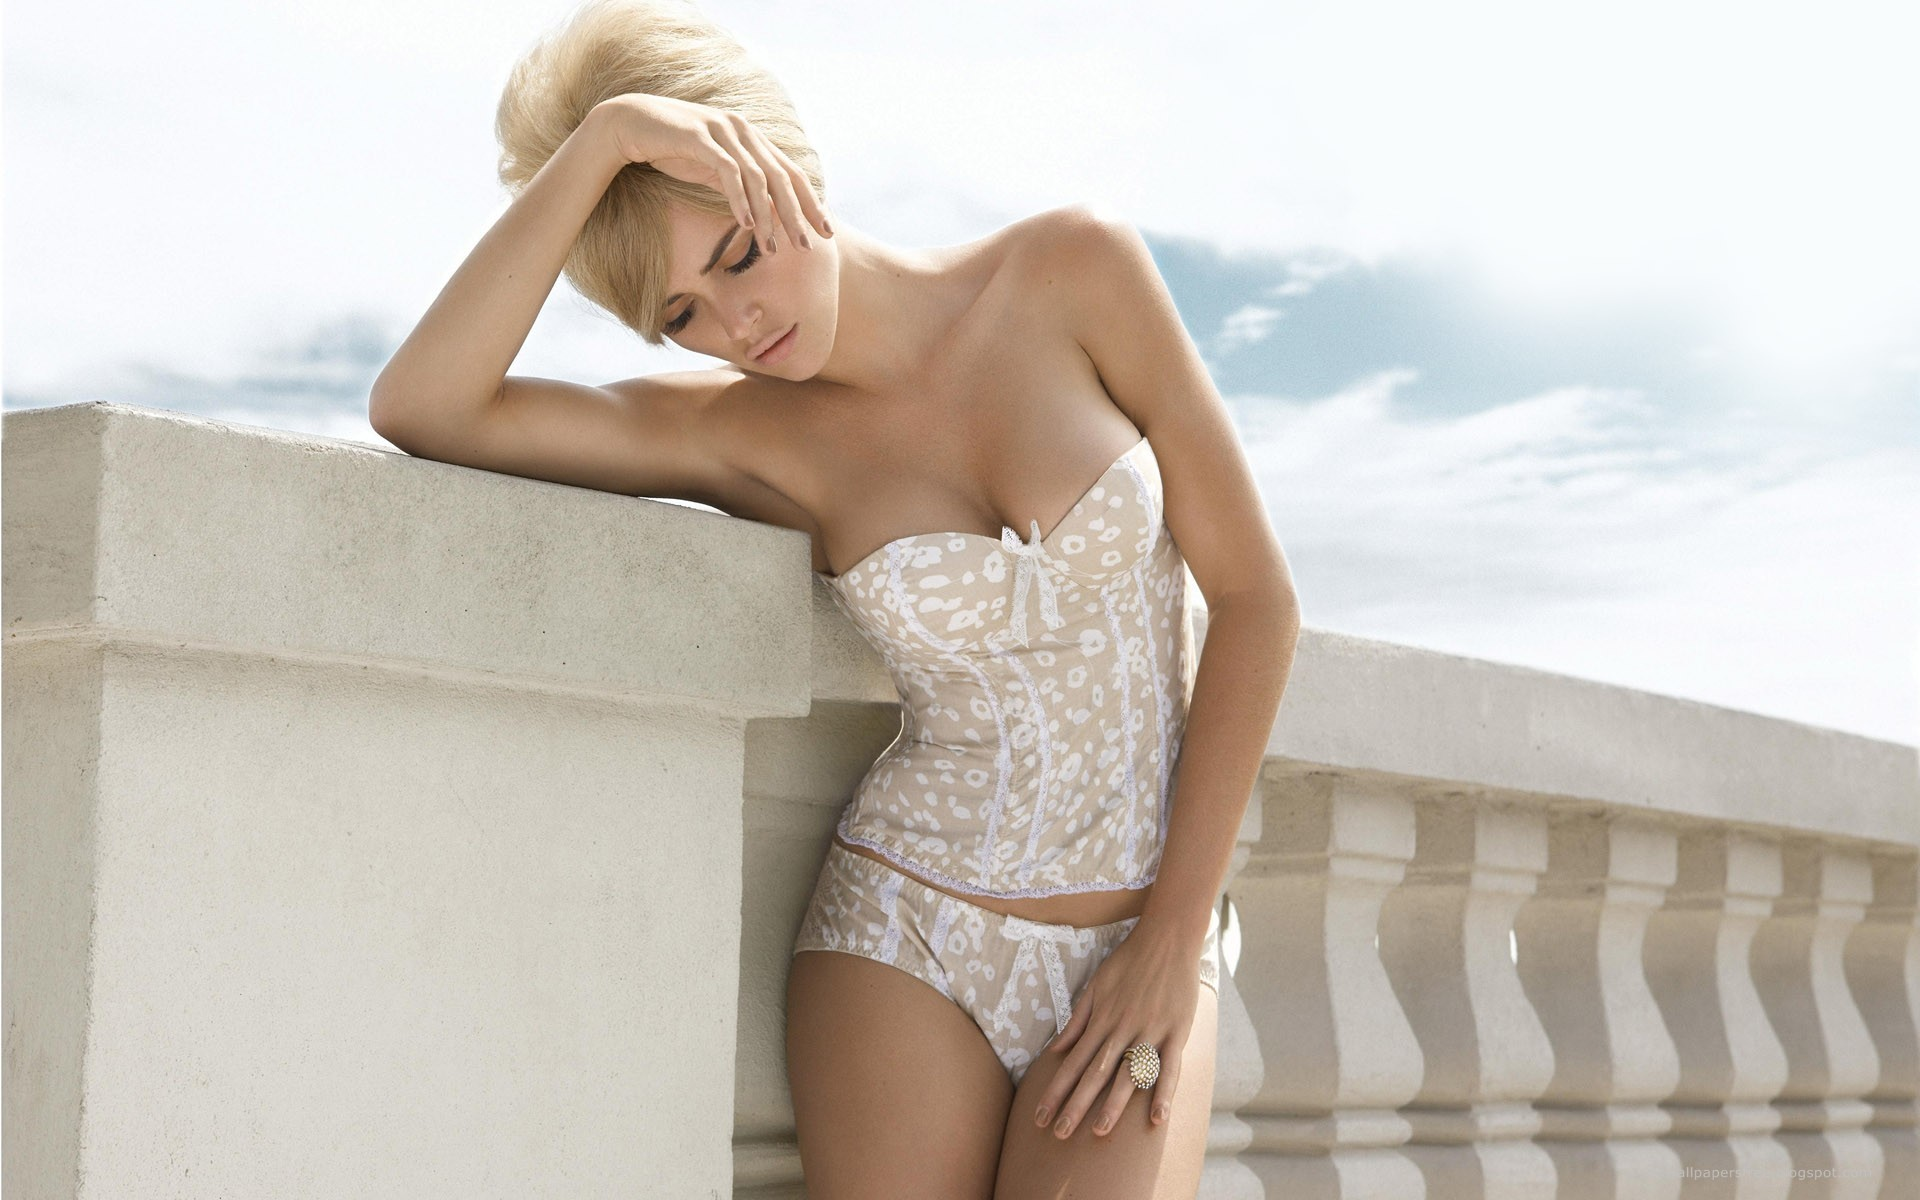 lingerie blondes woman fashion HD Wallpaper